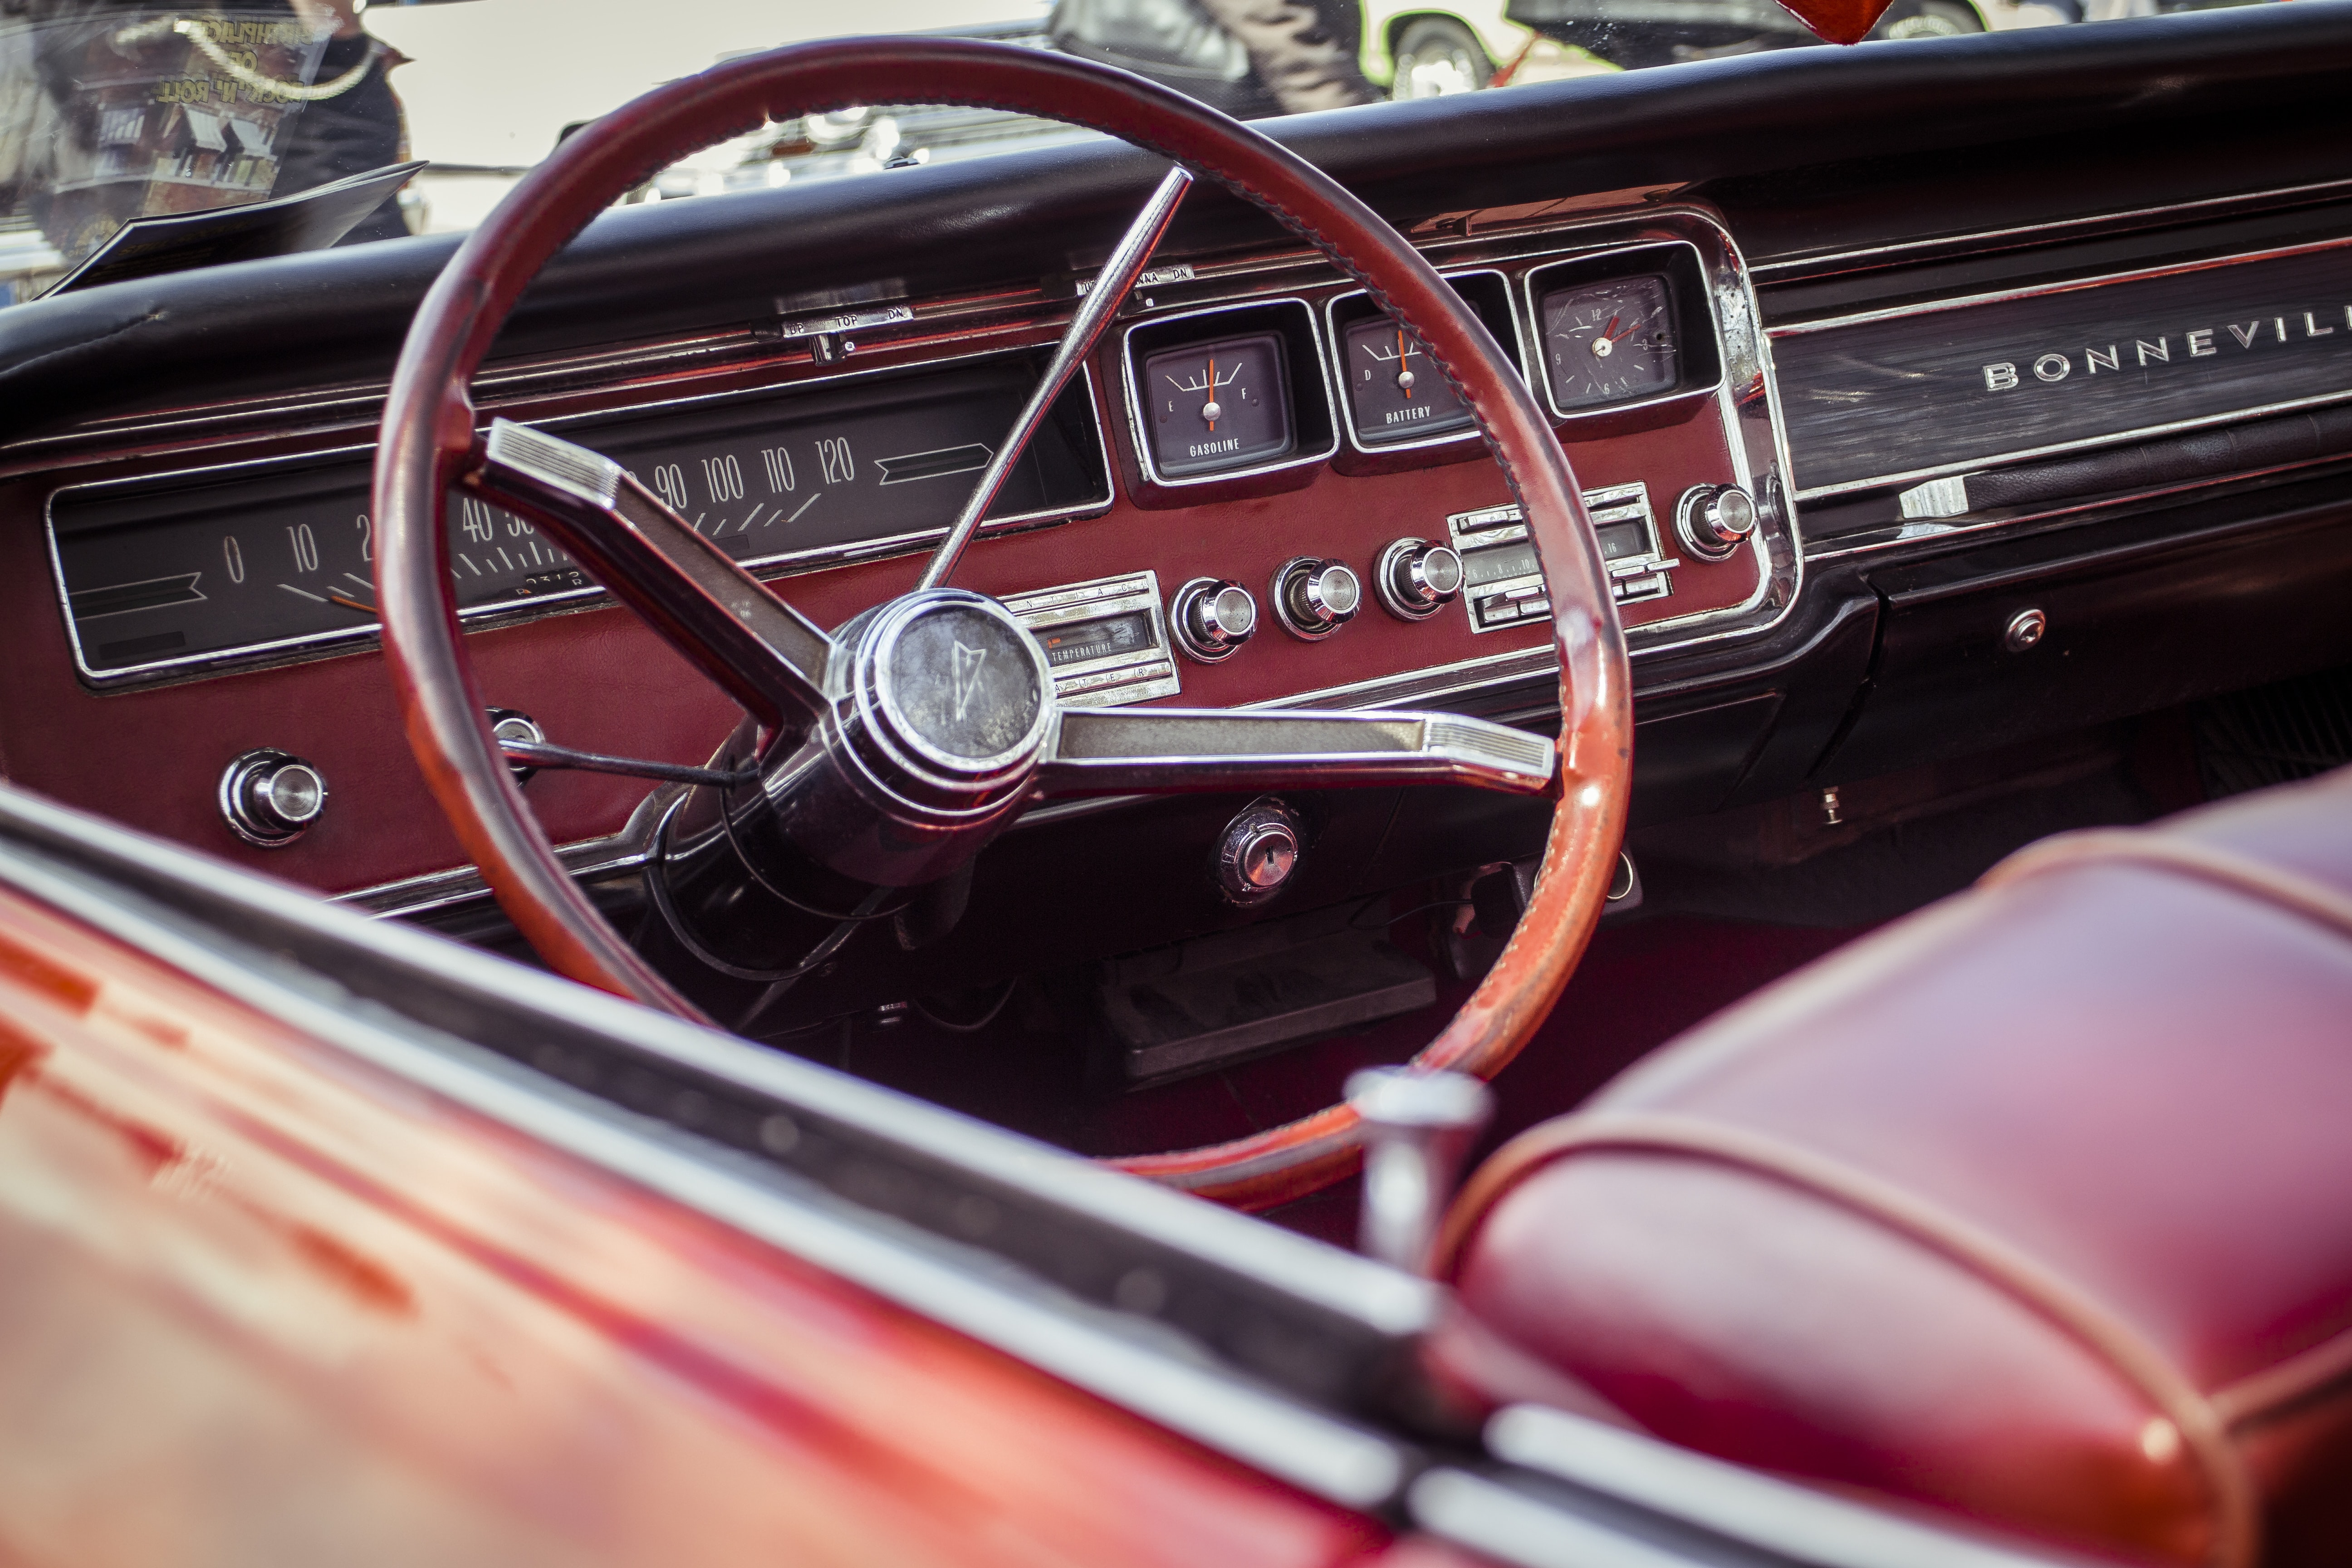 Steering wheel of a red vintage car with red interior.